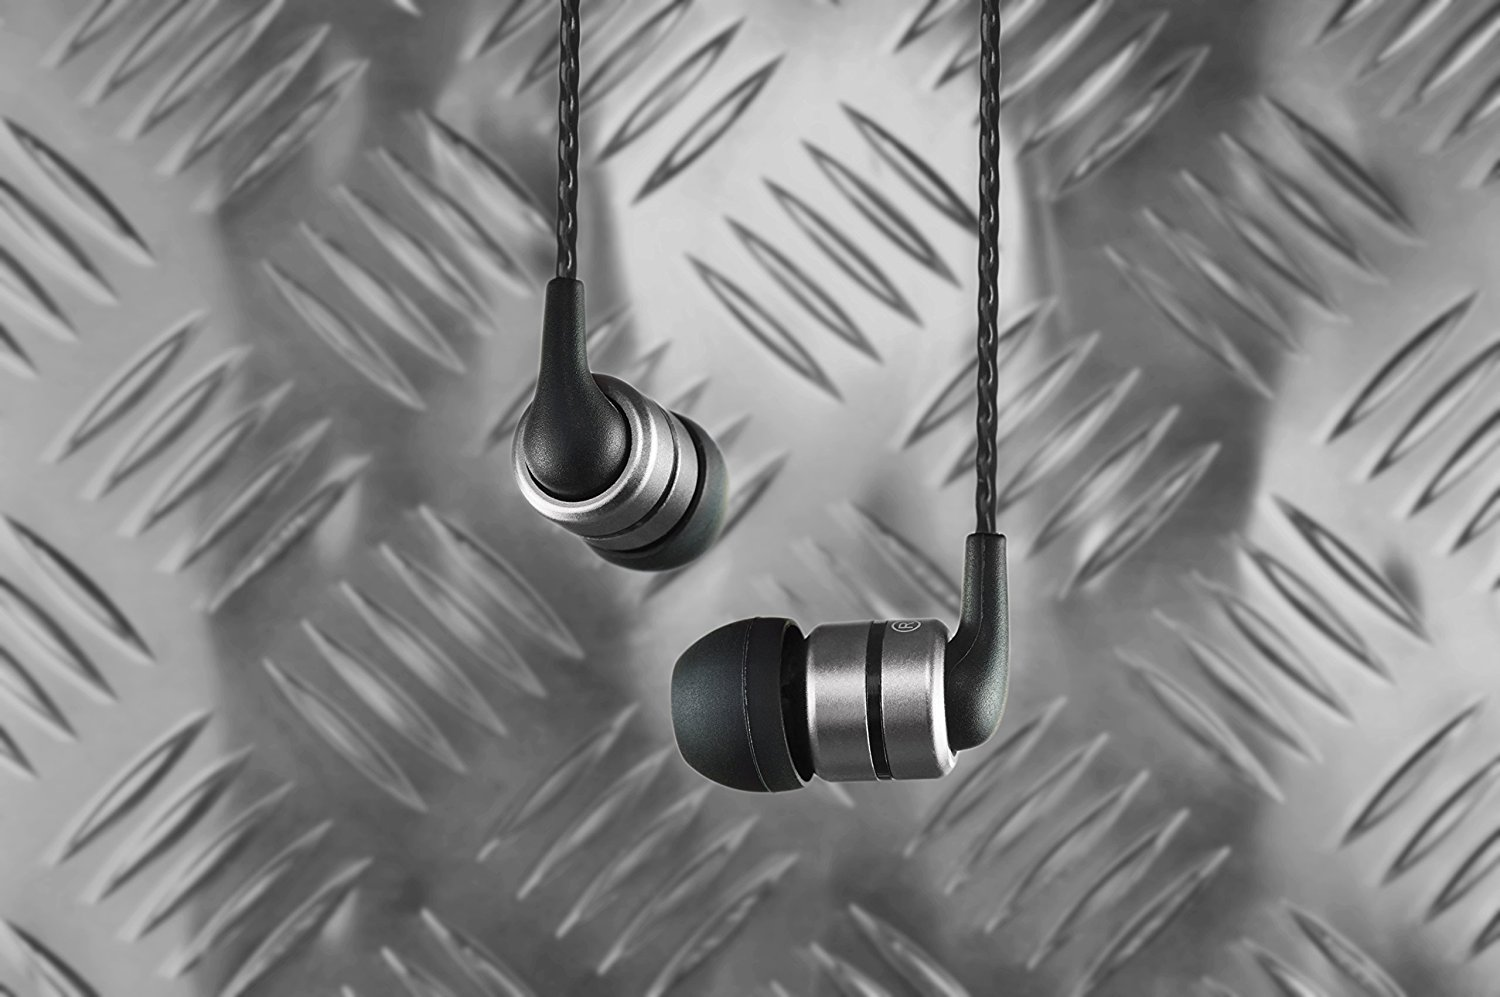 The SoundMagic E80 in-ear headphones.